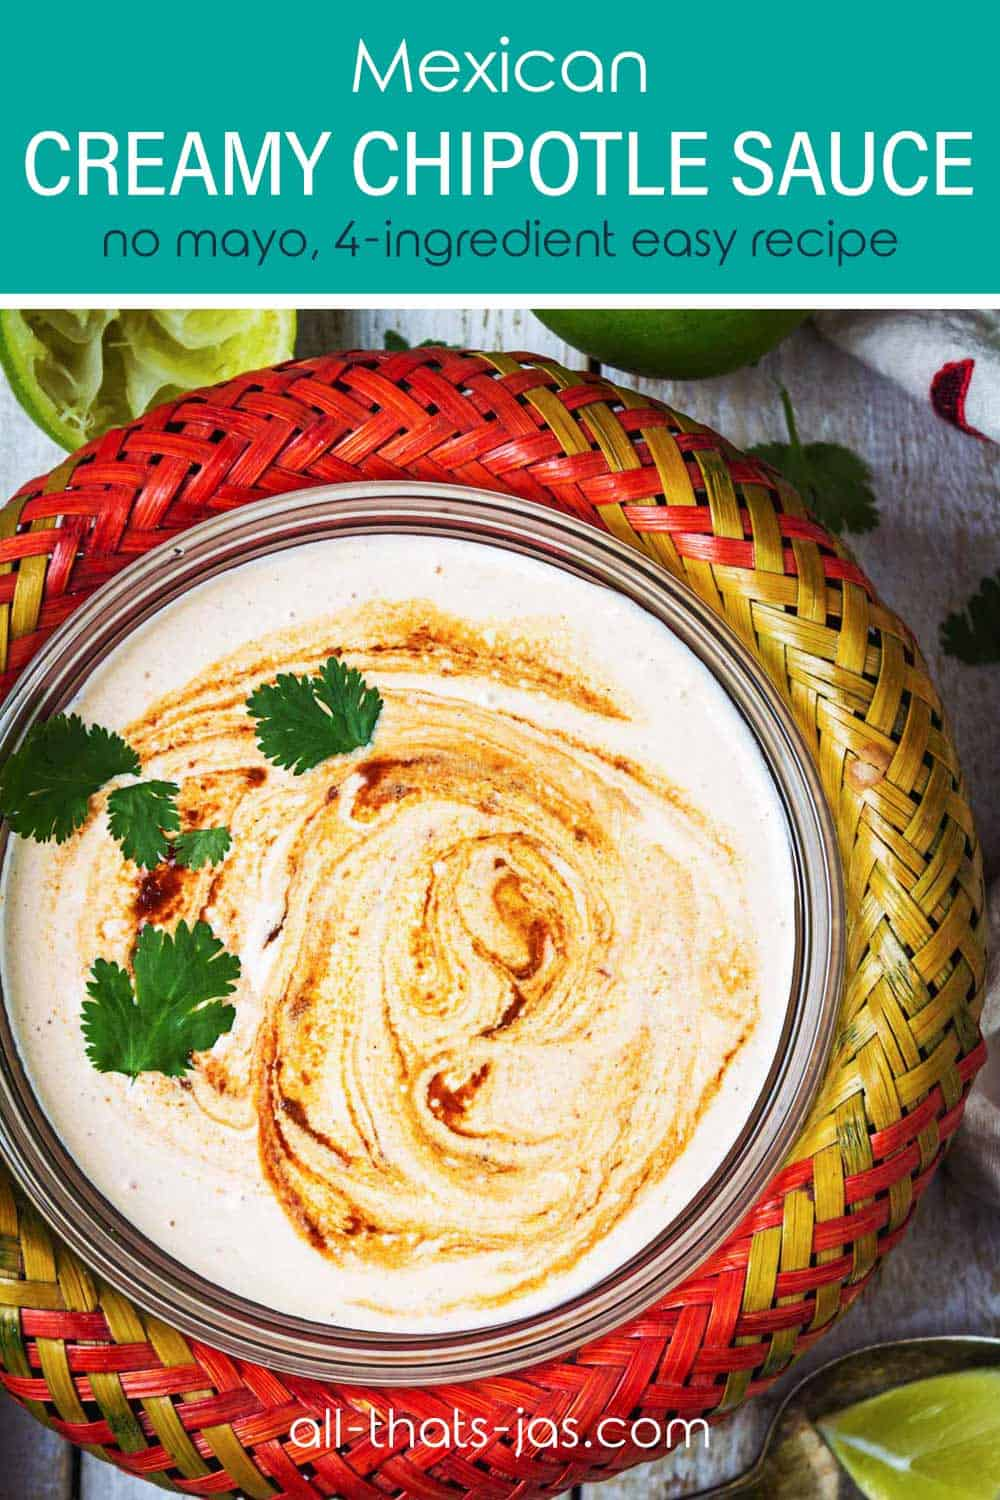 Close up of the chipotle dip with cilantro leaves and text overlay.